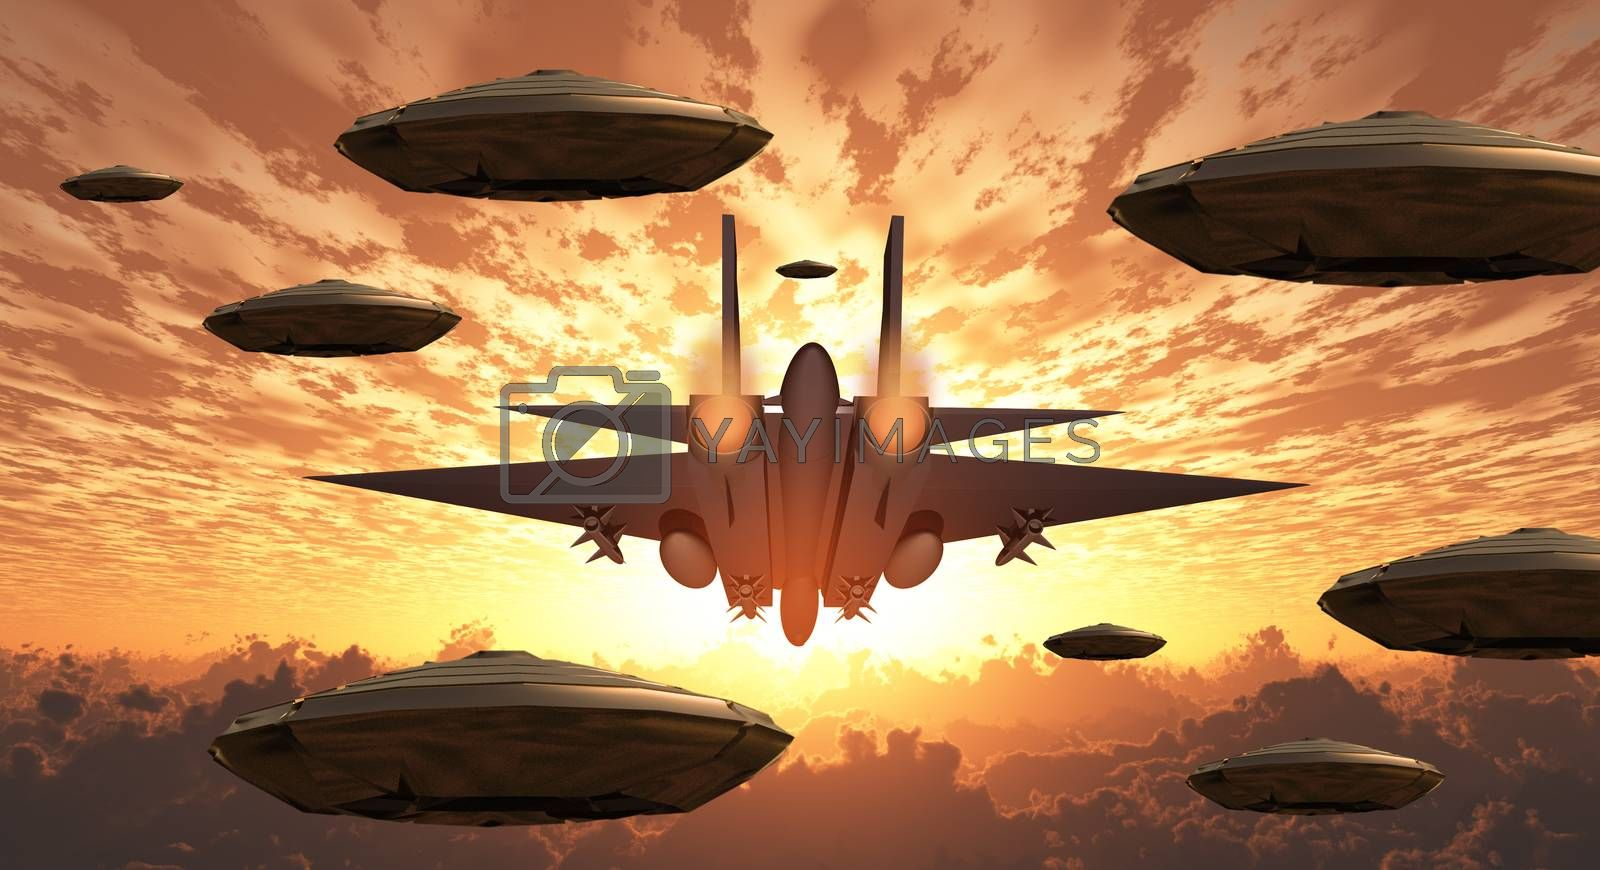 Aircrafts. Flying saucers and military jet plane by applesstock